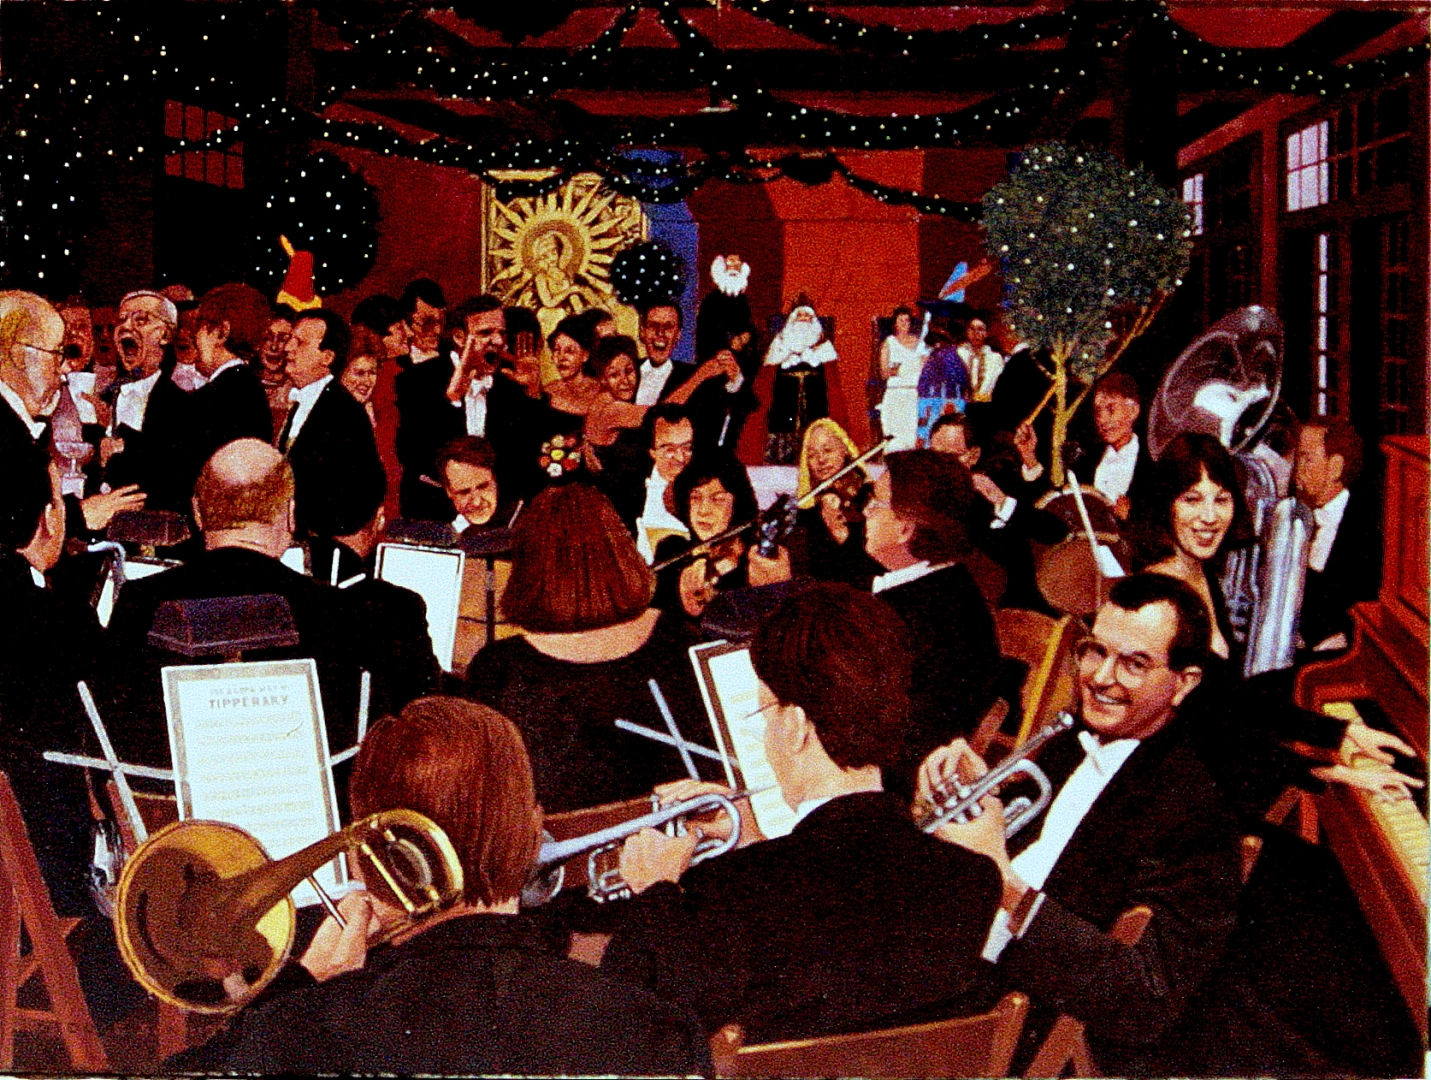 New Leviathan Orchestra at the Arthurians Ball, N.O.LA. :: Oil on Canvas